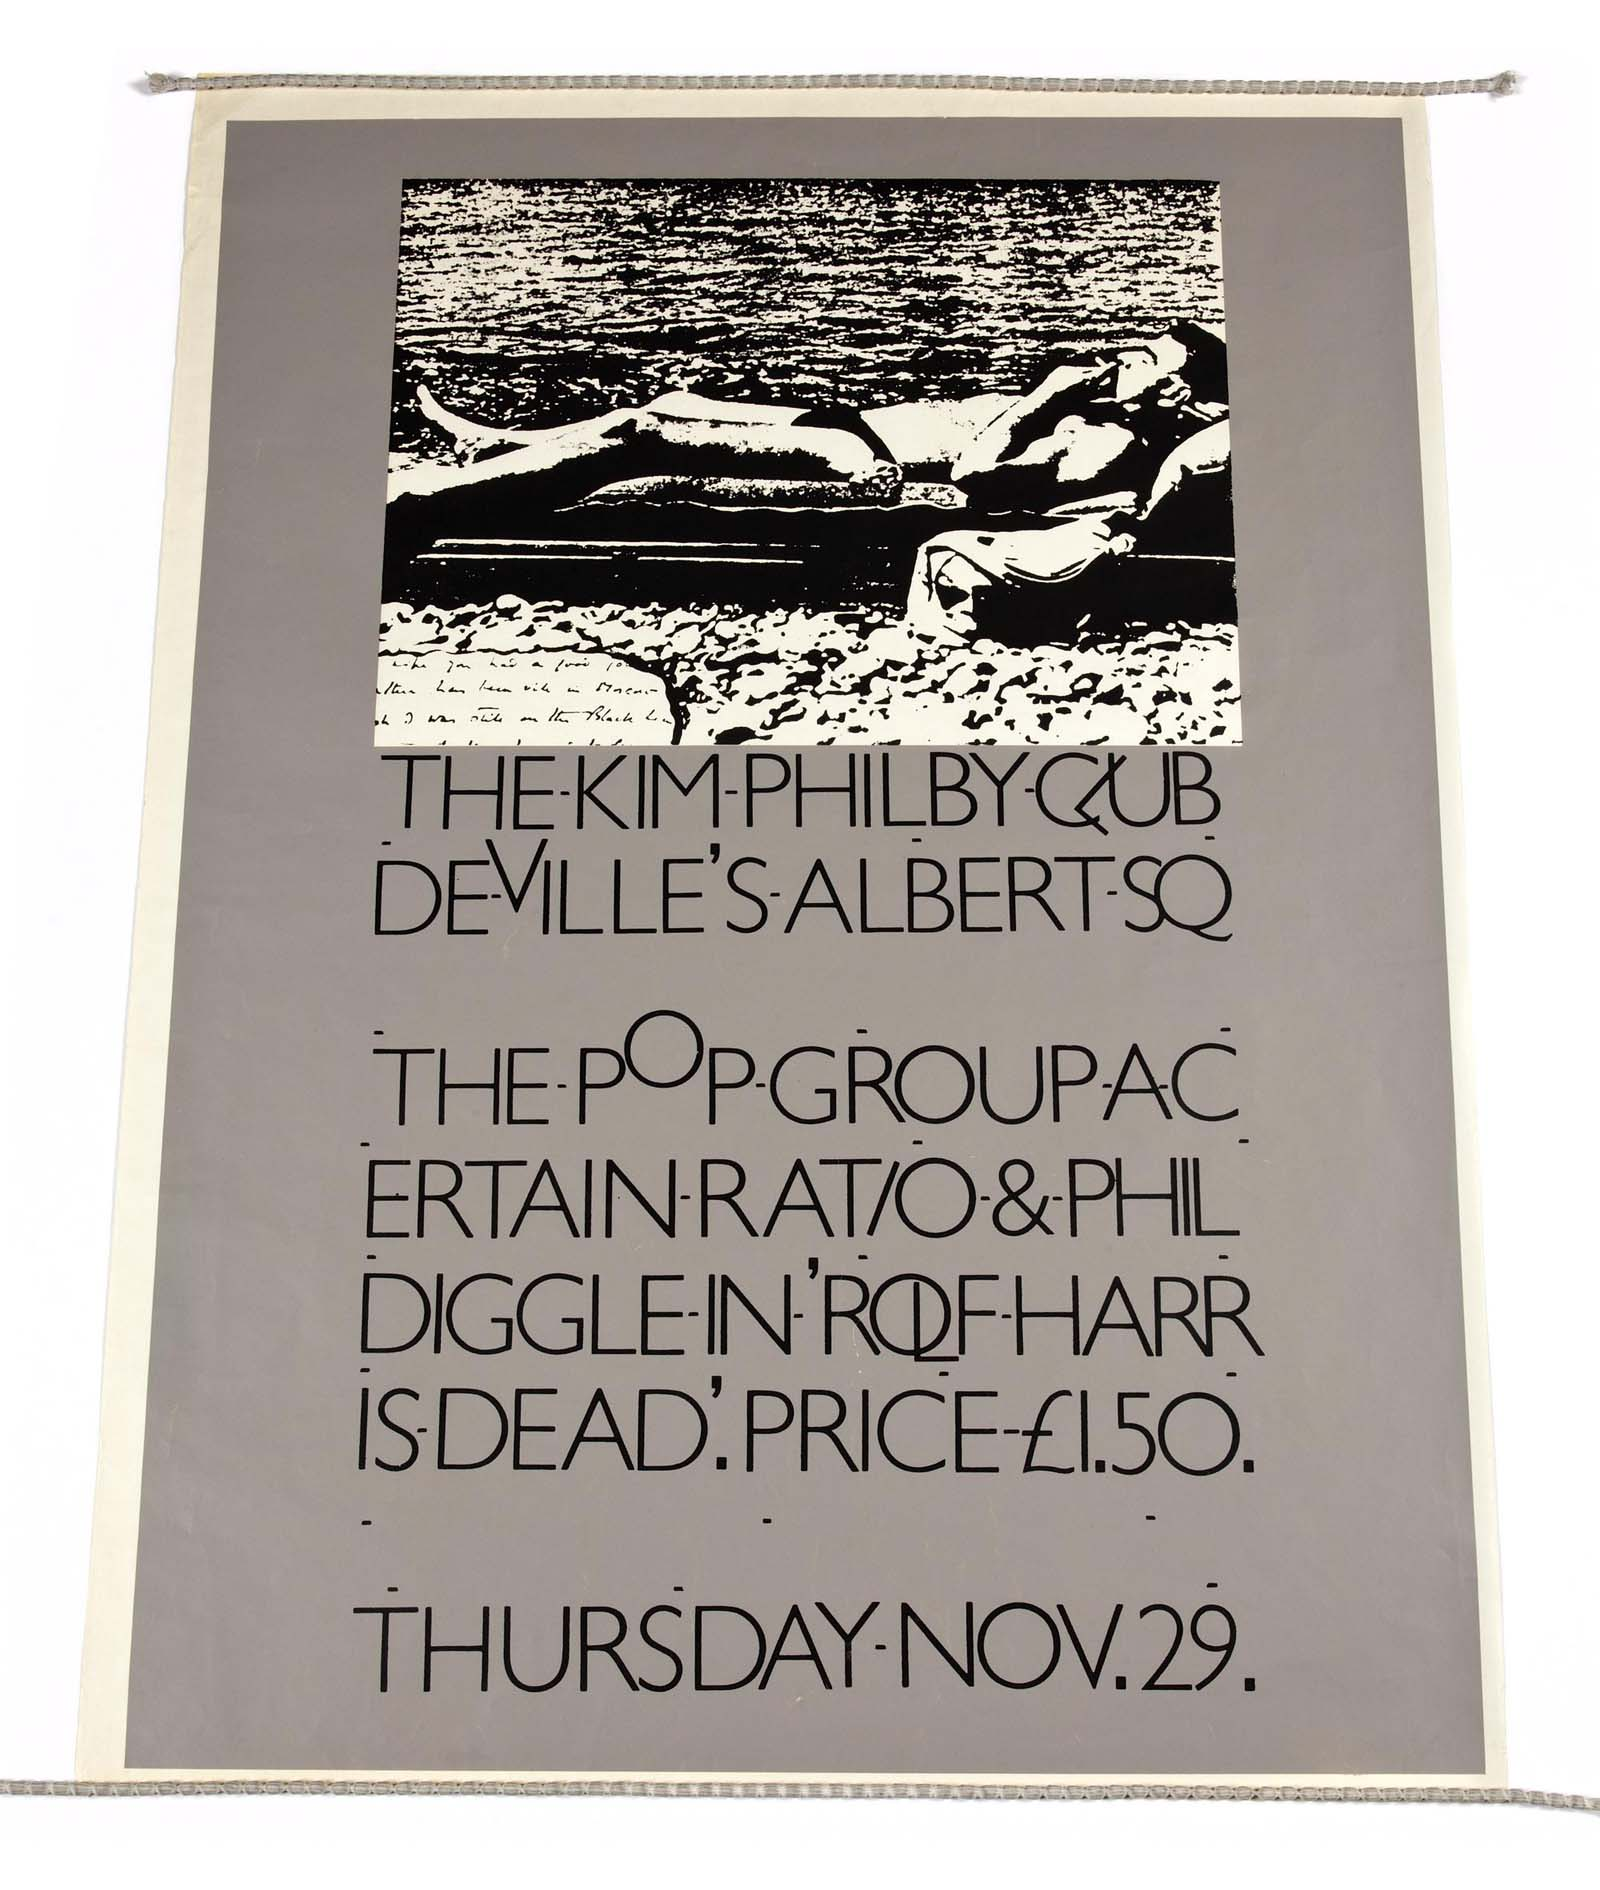 Grey poster with old illustration of a man reclining on a bed at the top and a list of bands and gig details below